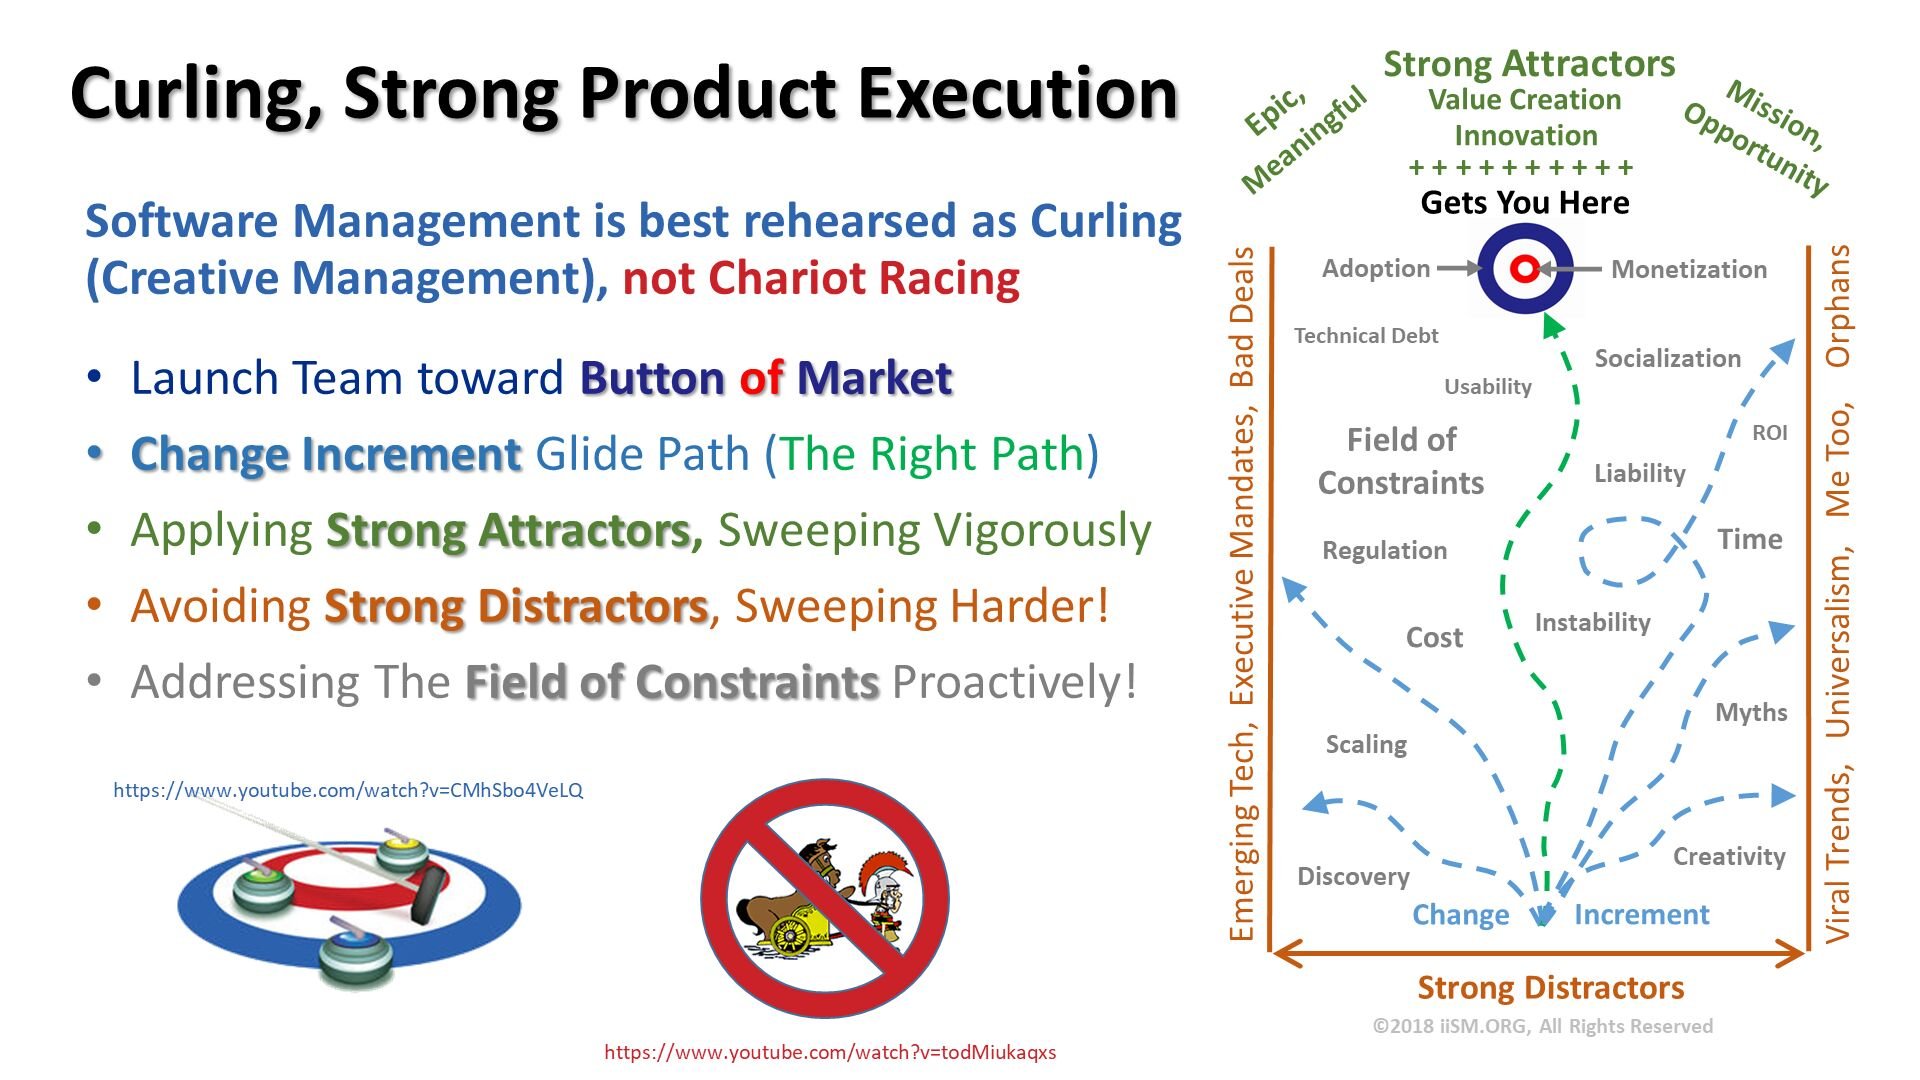 Curling, Strong Product Execution. Software Management is best rehearsed as Curling (Creative Management), not Chariot Racing Launch Team toward Button of Market Change Increment Glide Path (The Right Path) Applying Strong Attractors, Sweeping Vigorously Avoiding Strong Distractors, Sweeping Harder! Addressing The Field of Constraints Proactively!. https://www.youtube.com/watch?v=CMhSbo4VeLQ. https://www.youtube.com/watch?v=todMiukaqxs.